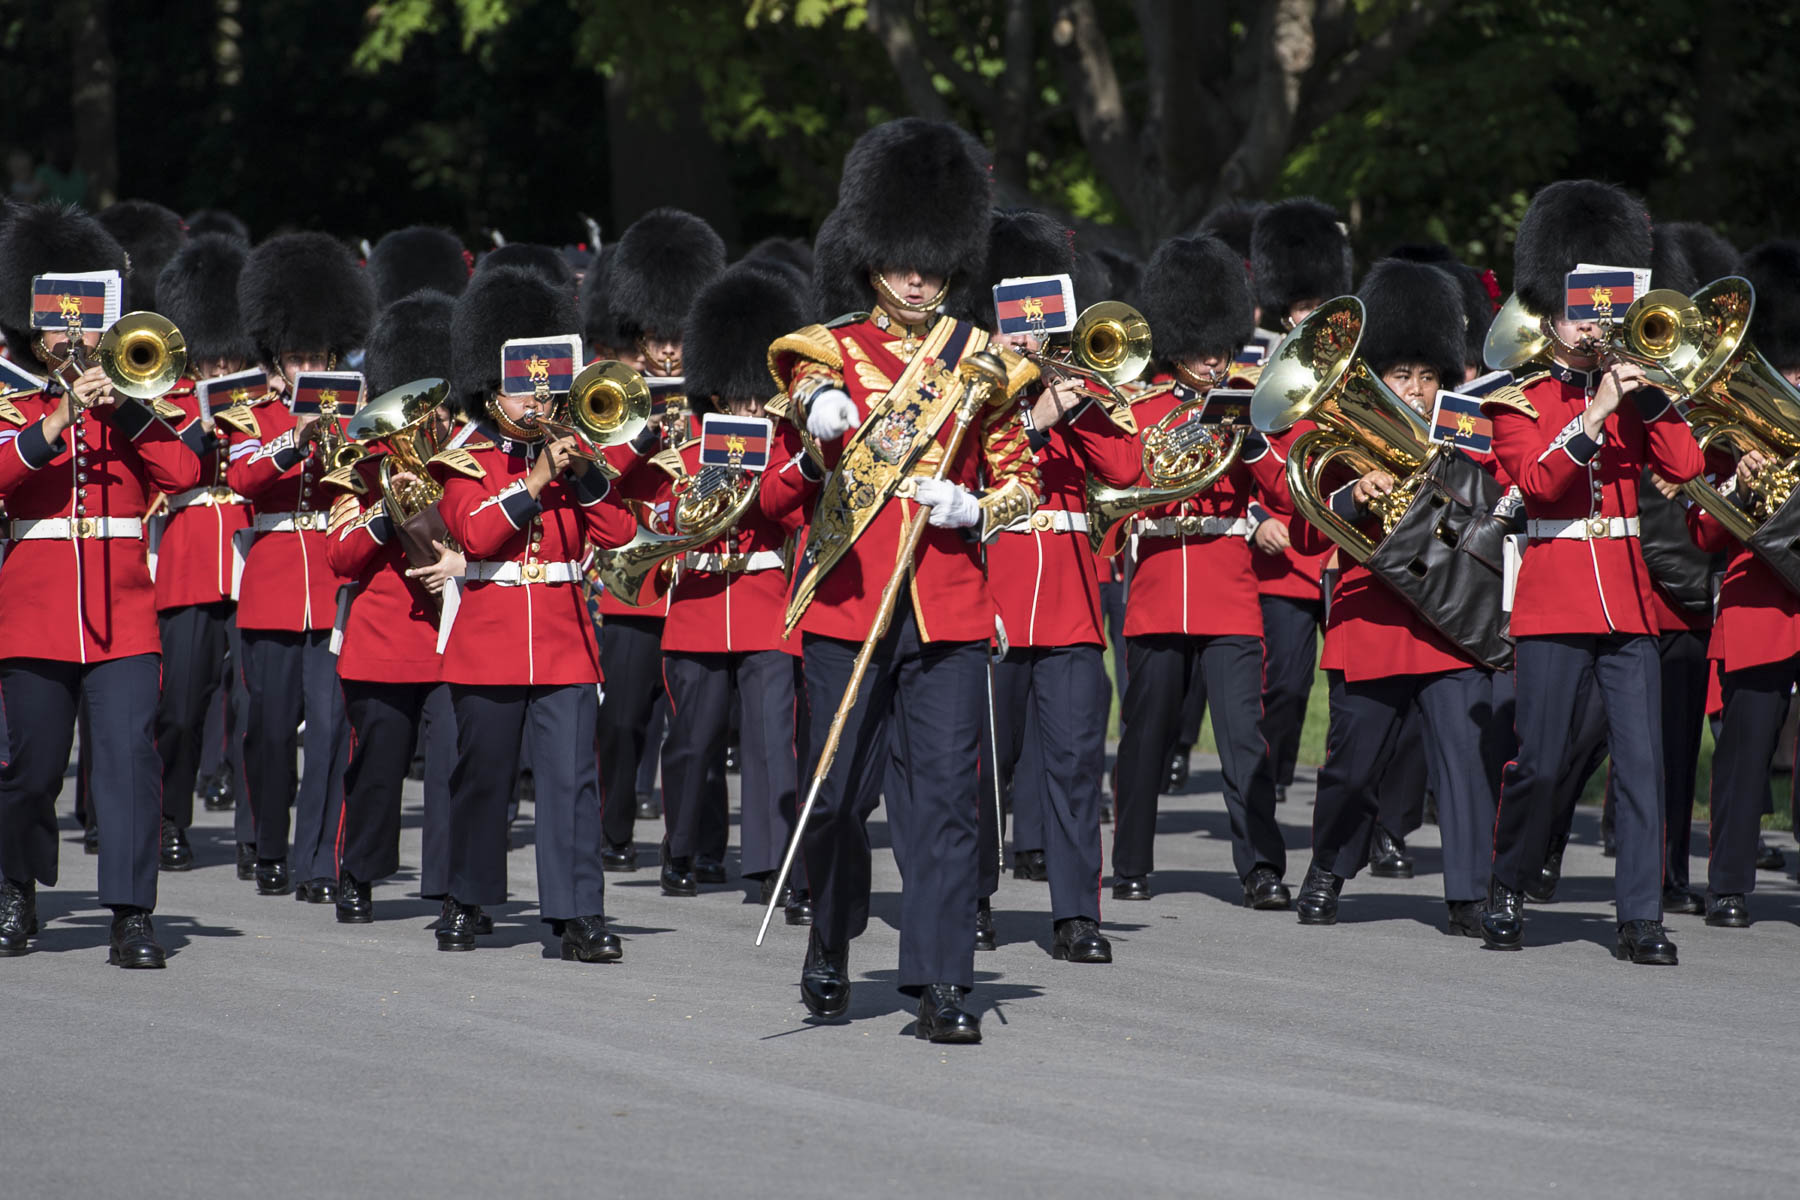 The Ceremonial Guard was established by the Canadian Army (CA) on behalf of the Canadian Armed Forces (CAF) to plan, prepare and execute public duties in Canada's Capital Region during the summer.